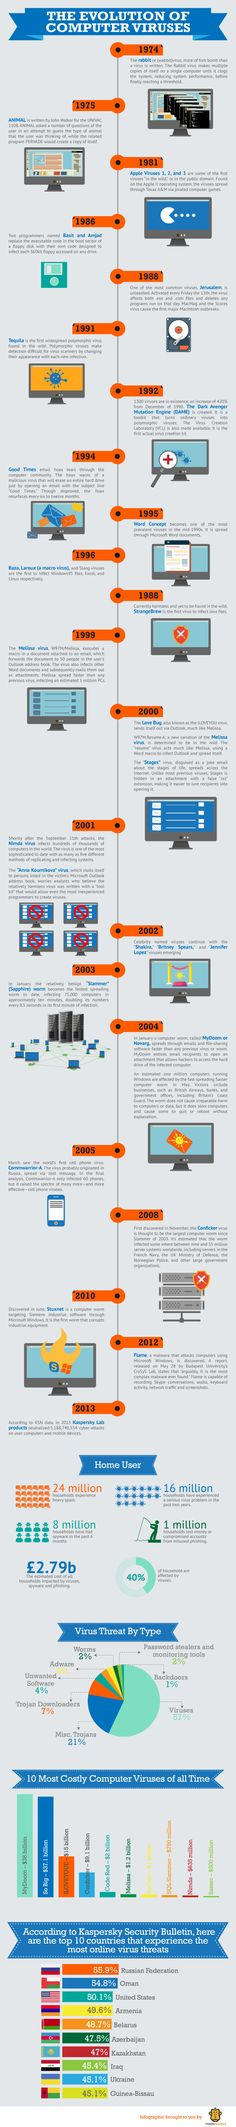 The Evolution of Computer Viruses #Infographic #ComputerViruses